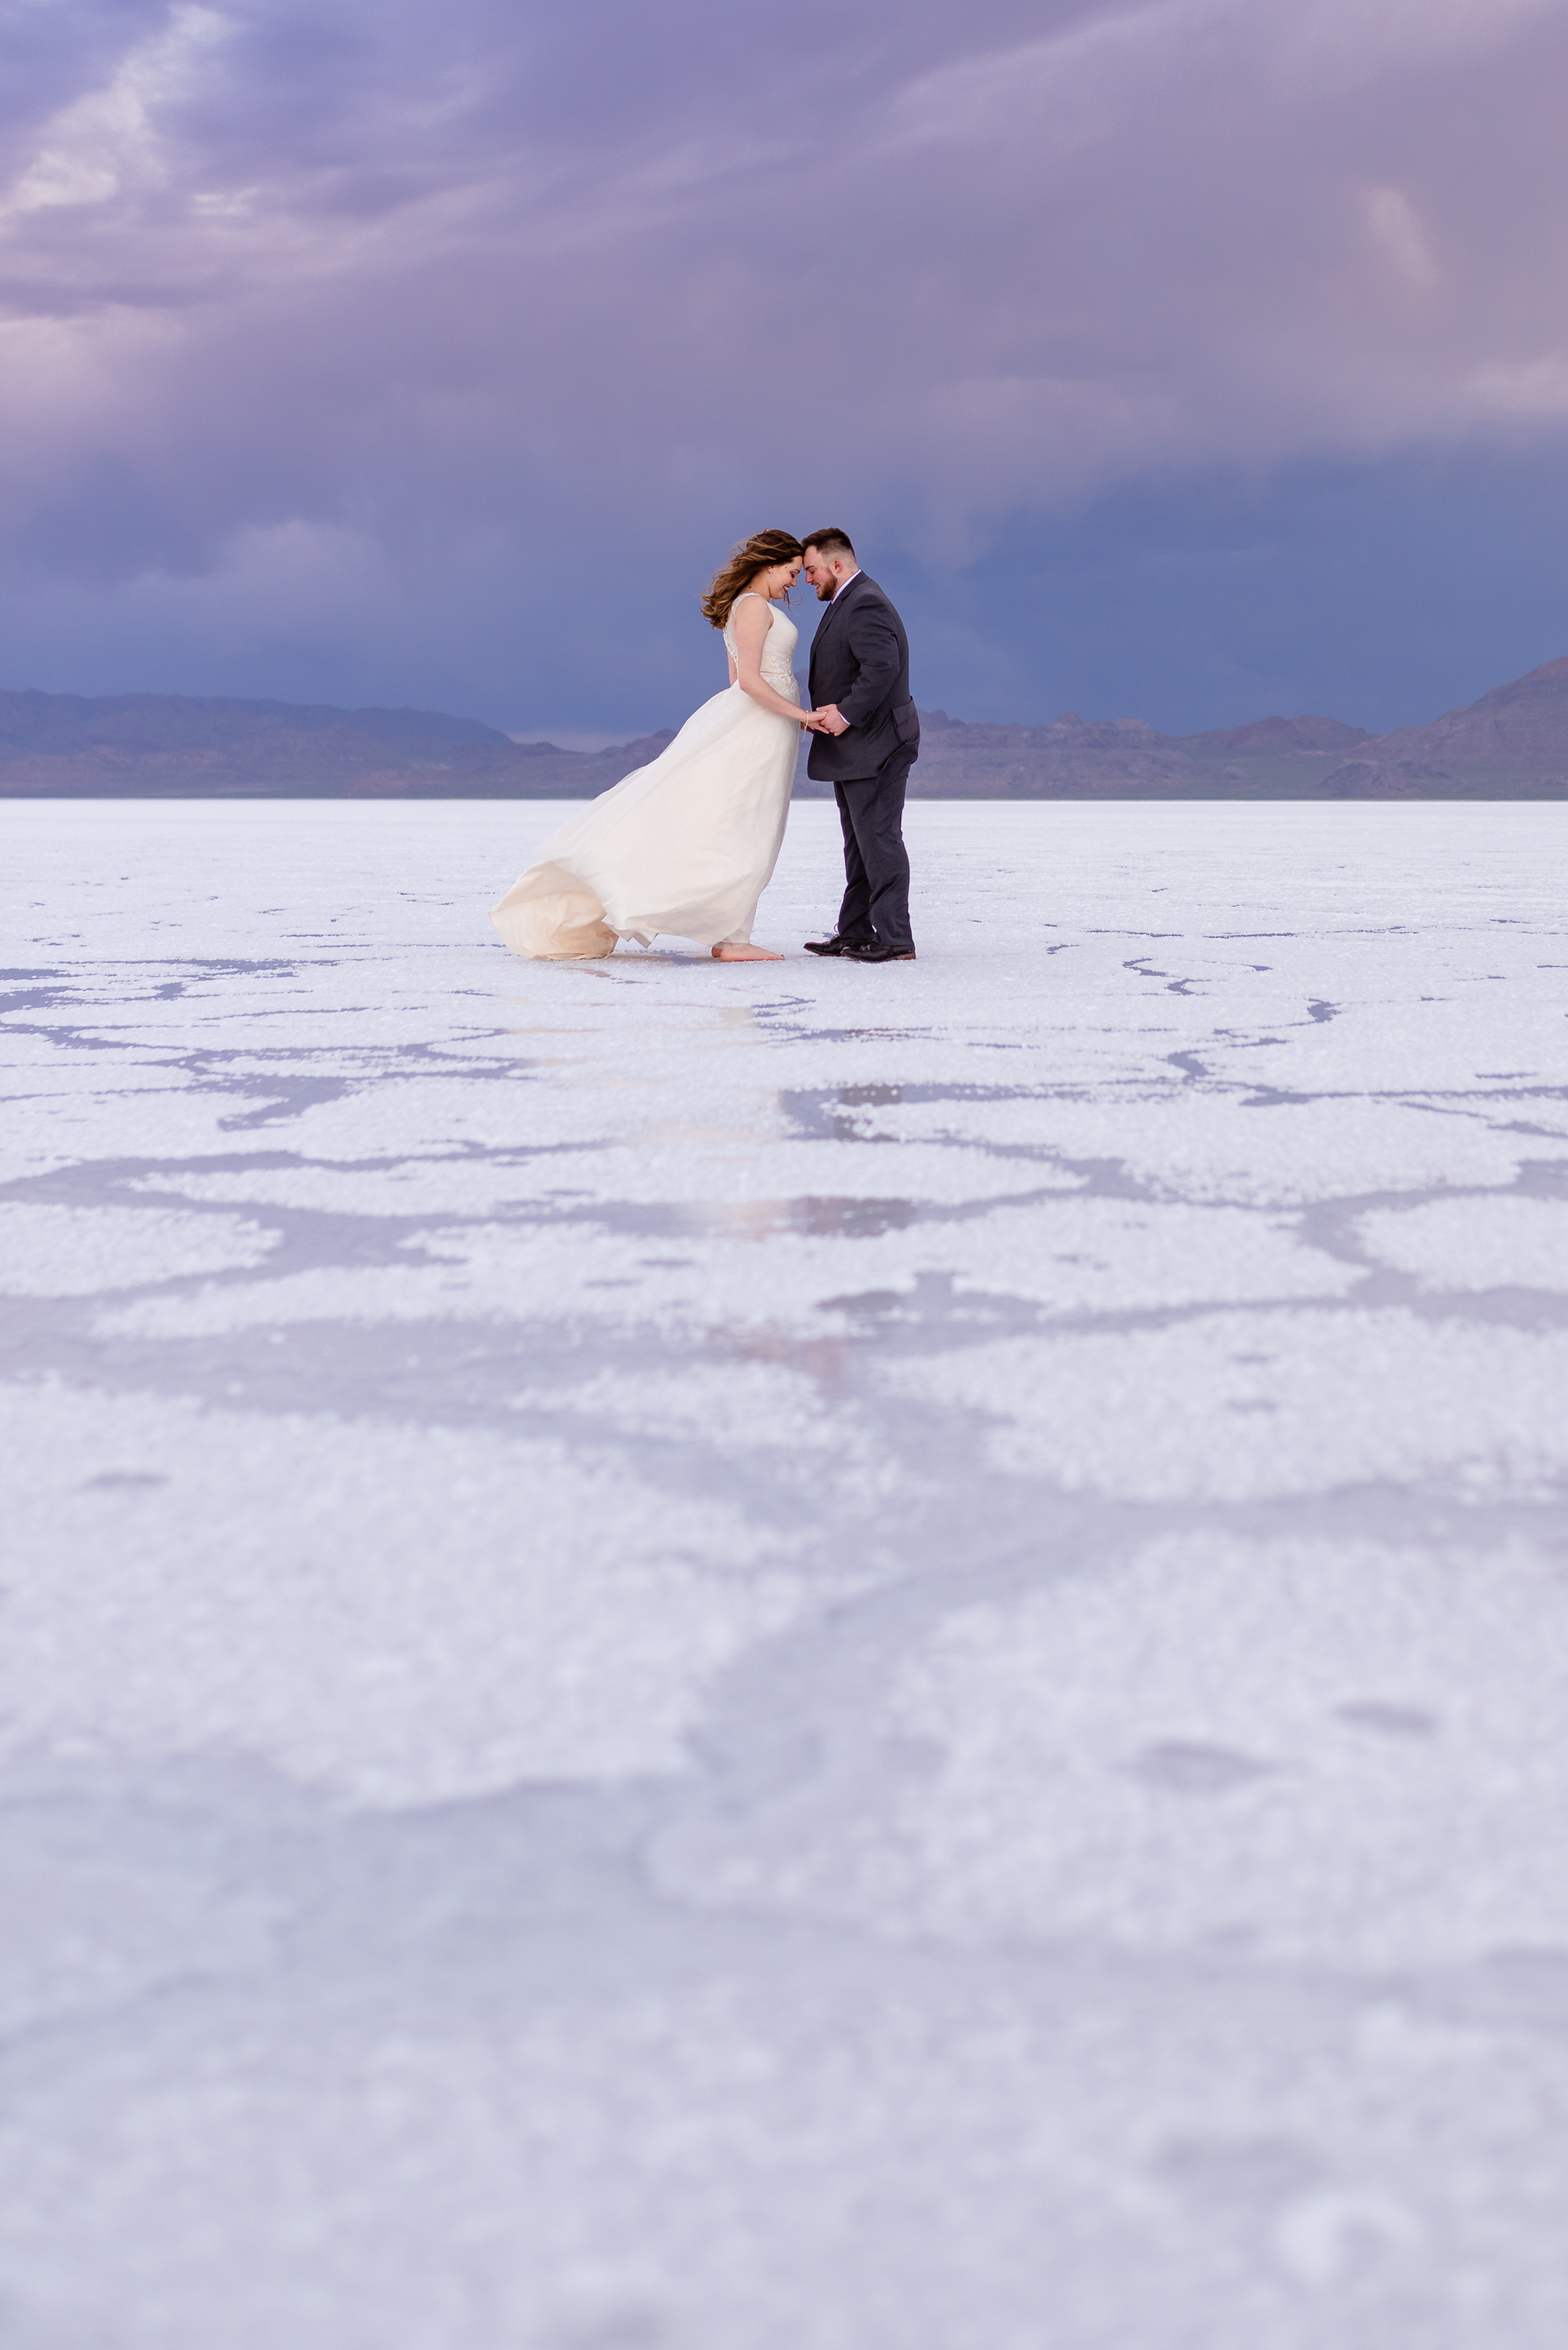 Loving Each other through the storms. Formals and first look wedding session taken at the Bonneville Salt Flats in Utah during a stormy evening in May. Gold and ivory wedding dress with groom's blue suit and purple tie. Images taken by Coley Cook Photography.